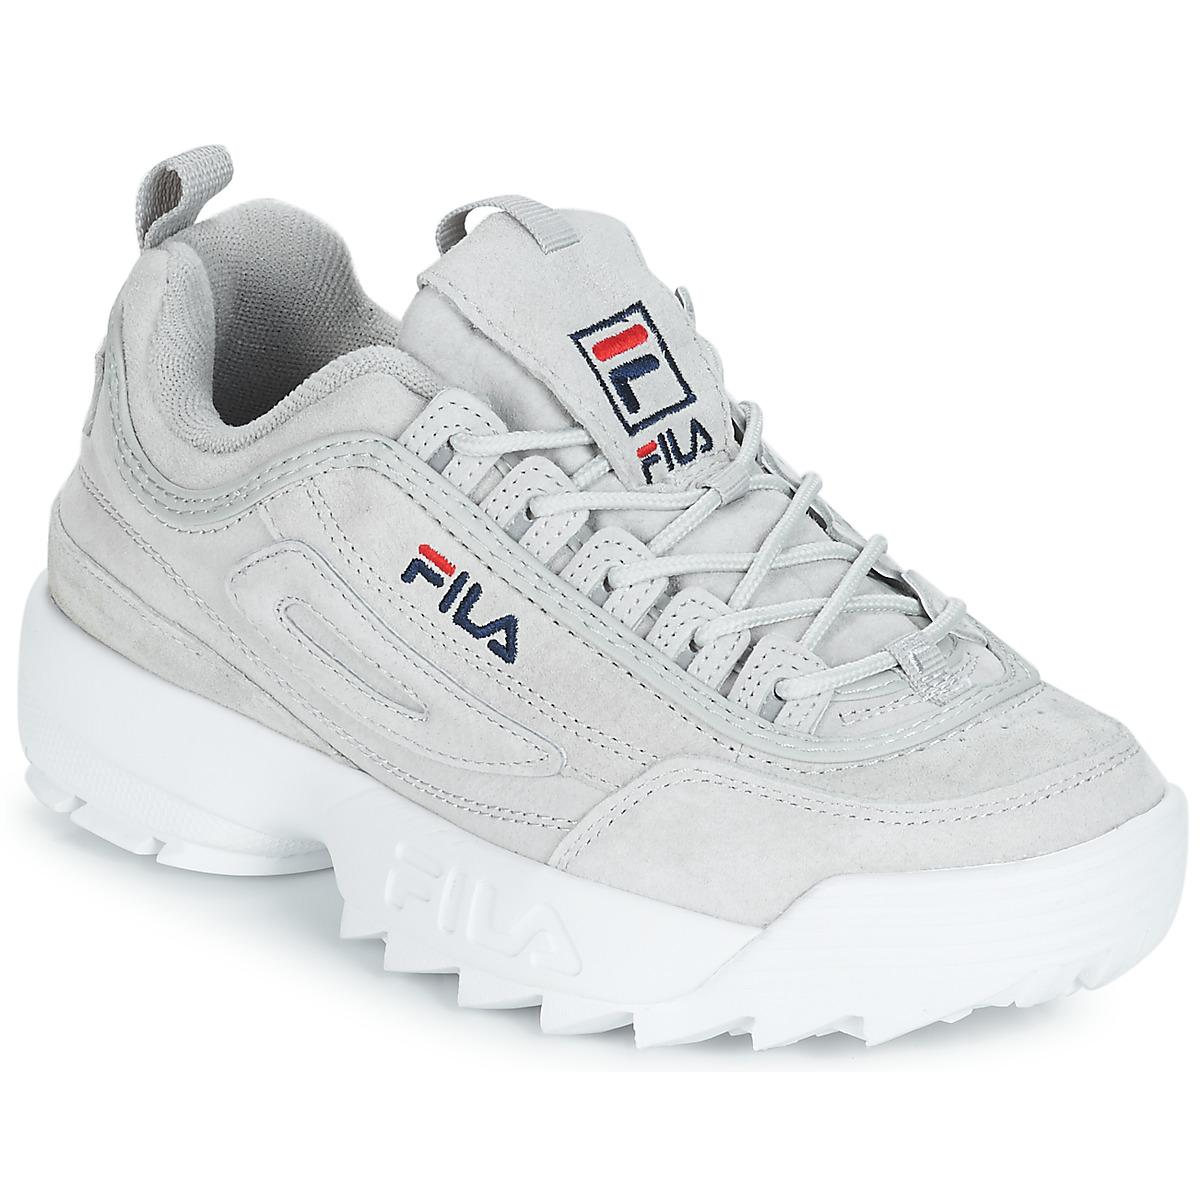 dceb7cc41000 Fila Disruptor S Low Wmn Shoes (trainers) in Natural - Lyst